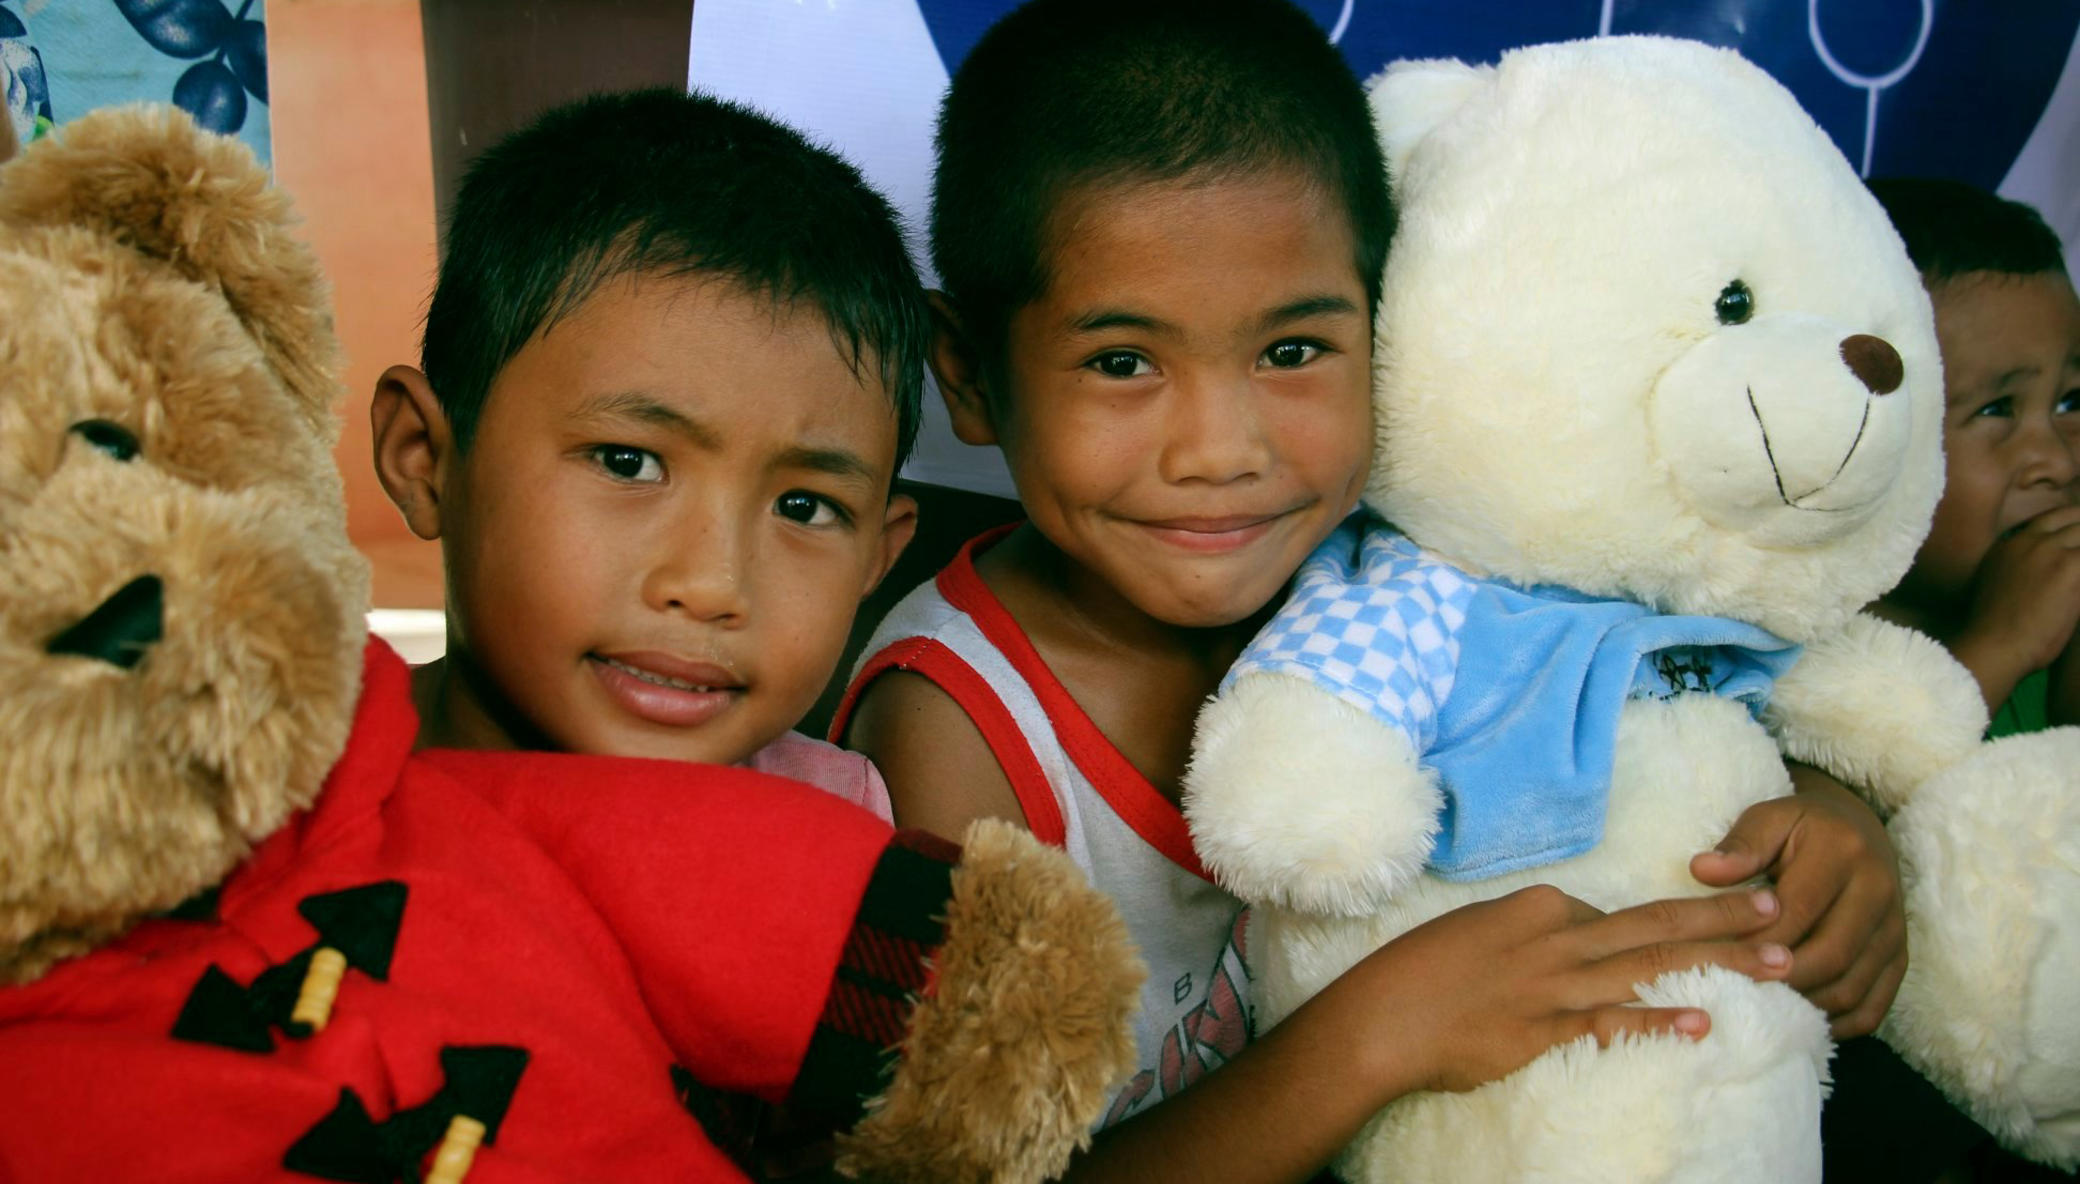 Aid to Refugees of Taal Volcano, Floods, COVID-19